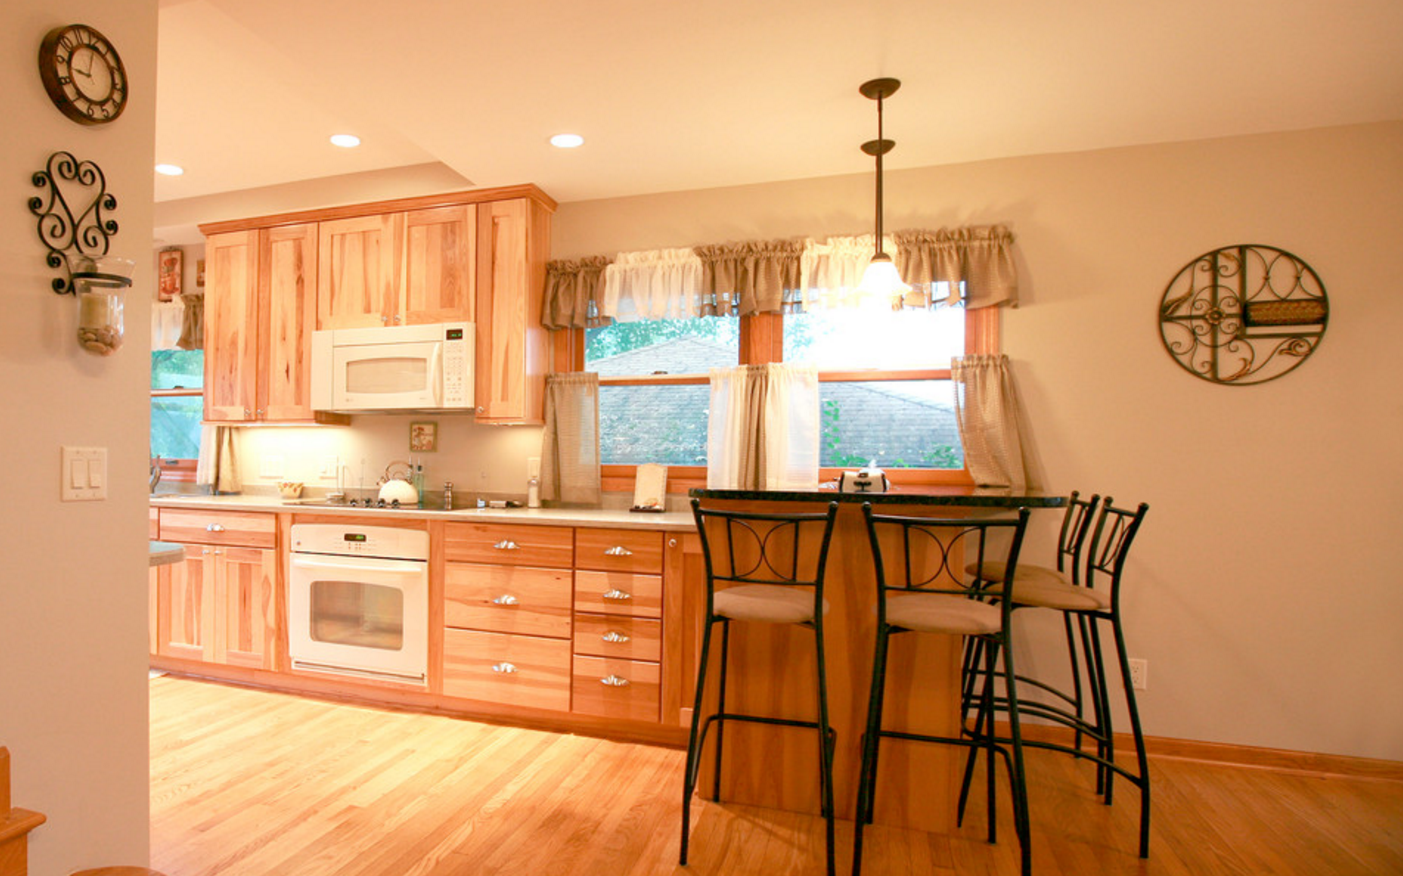 kitchen-remodel-madison-verona-middletonn-monona-wisconsin-18.png